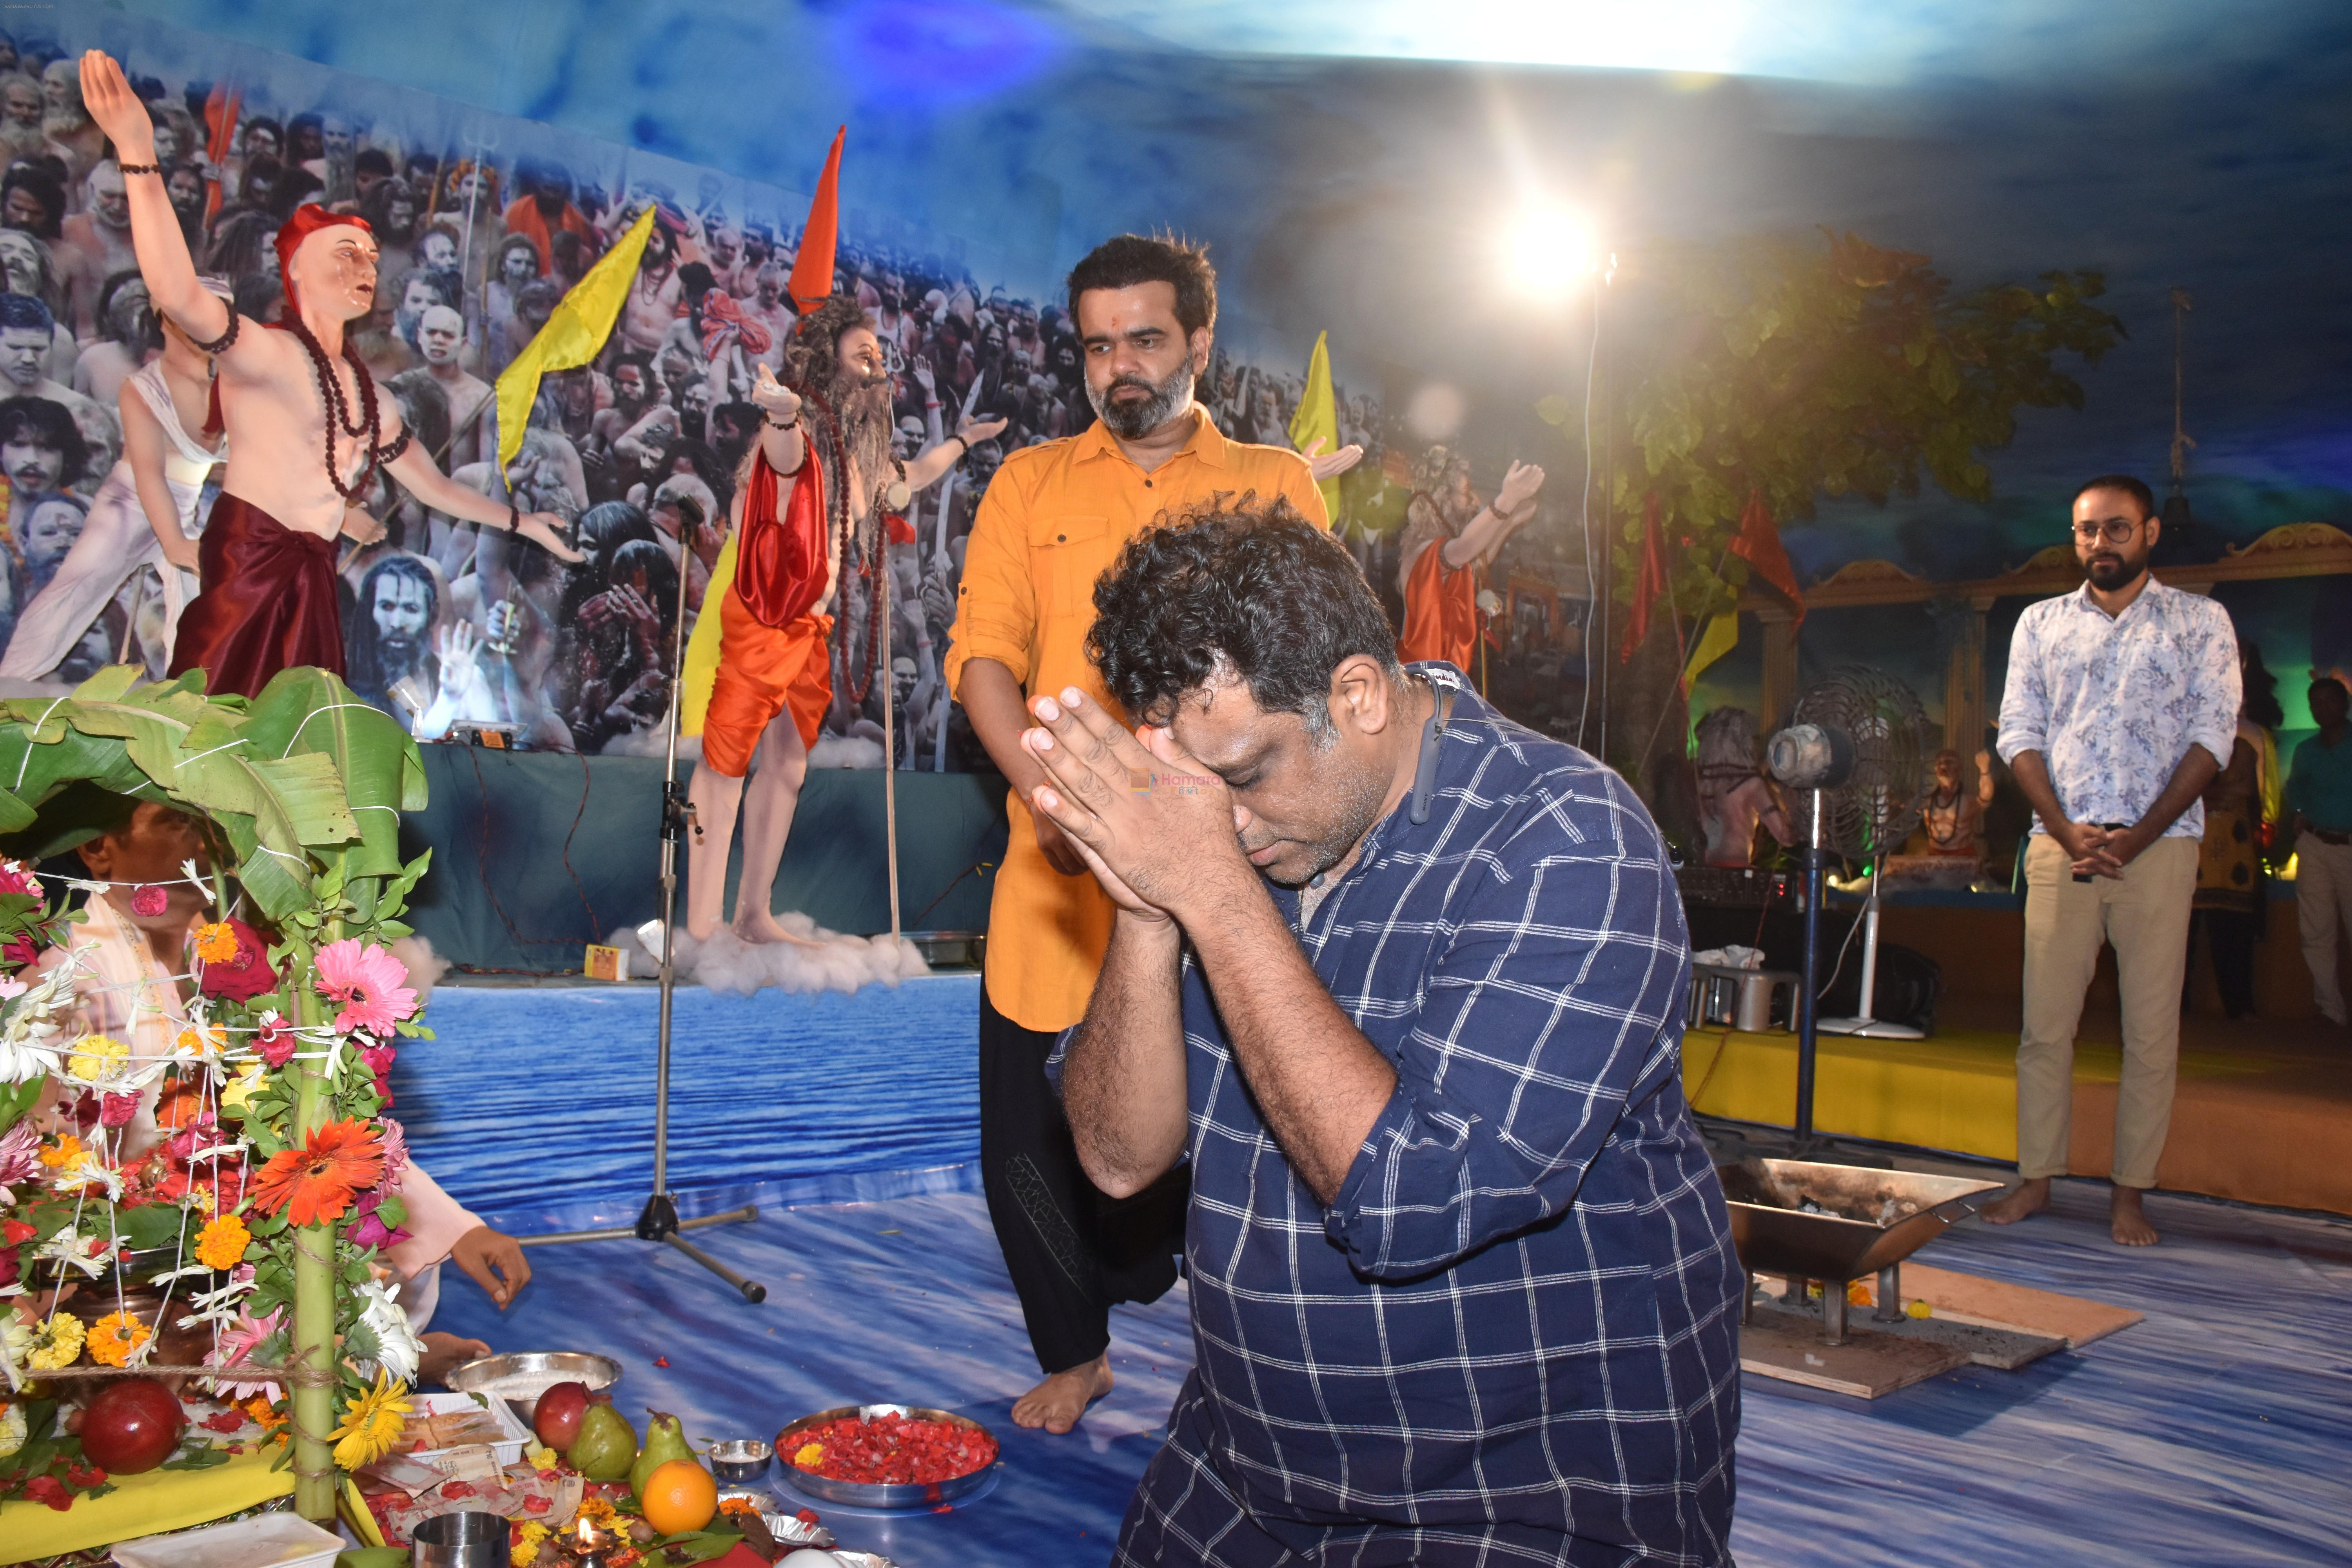 Anurag Basu at Tseries office in andheri for Ganesh darshan on 12th Sept 2019